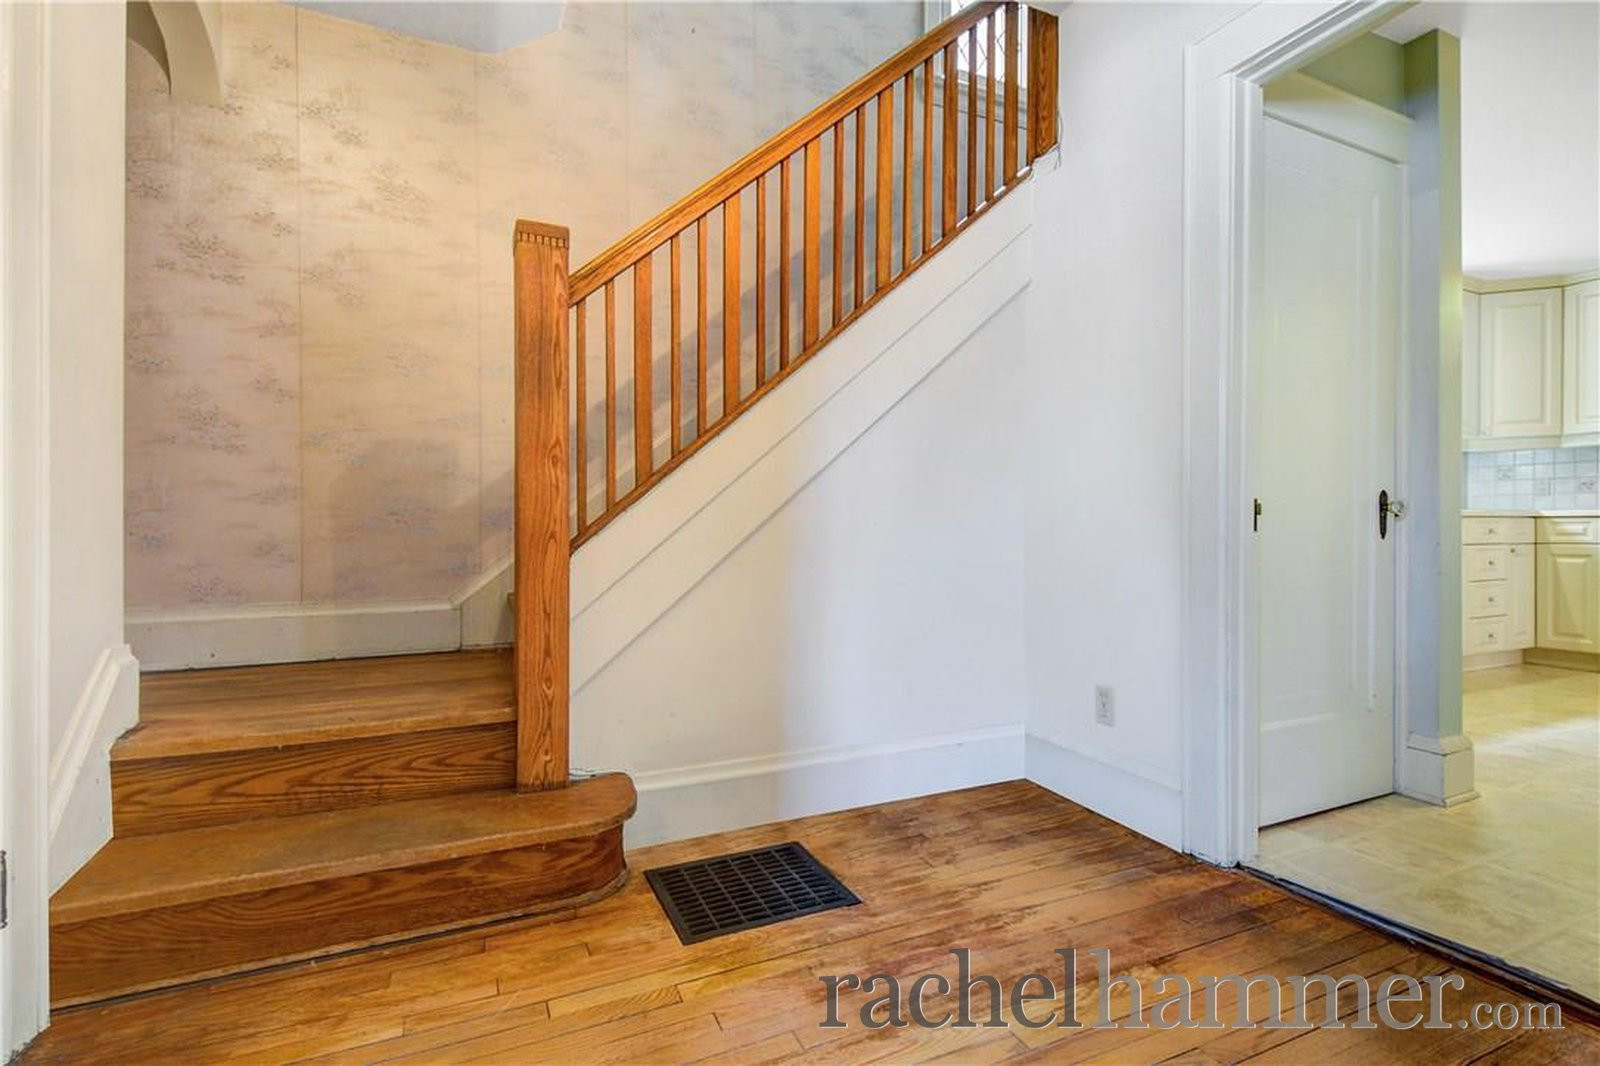 canada hardwood flooring ottawa of rachelhammer com real estate team for ottawa on canada 98 within 19879745 98 renfrew avenue the glebe ottawa ontario